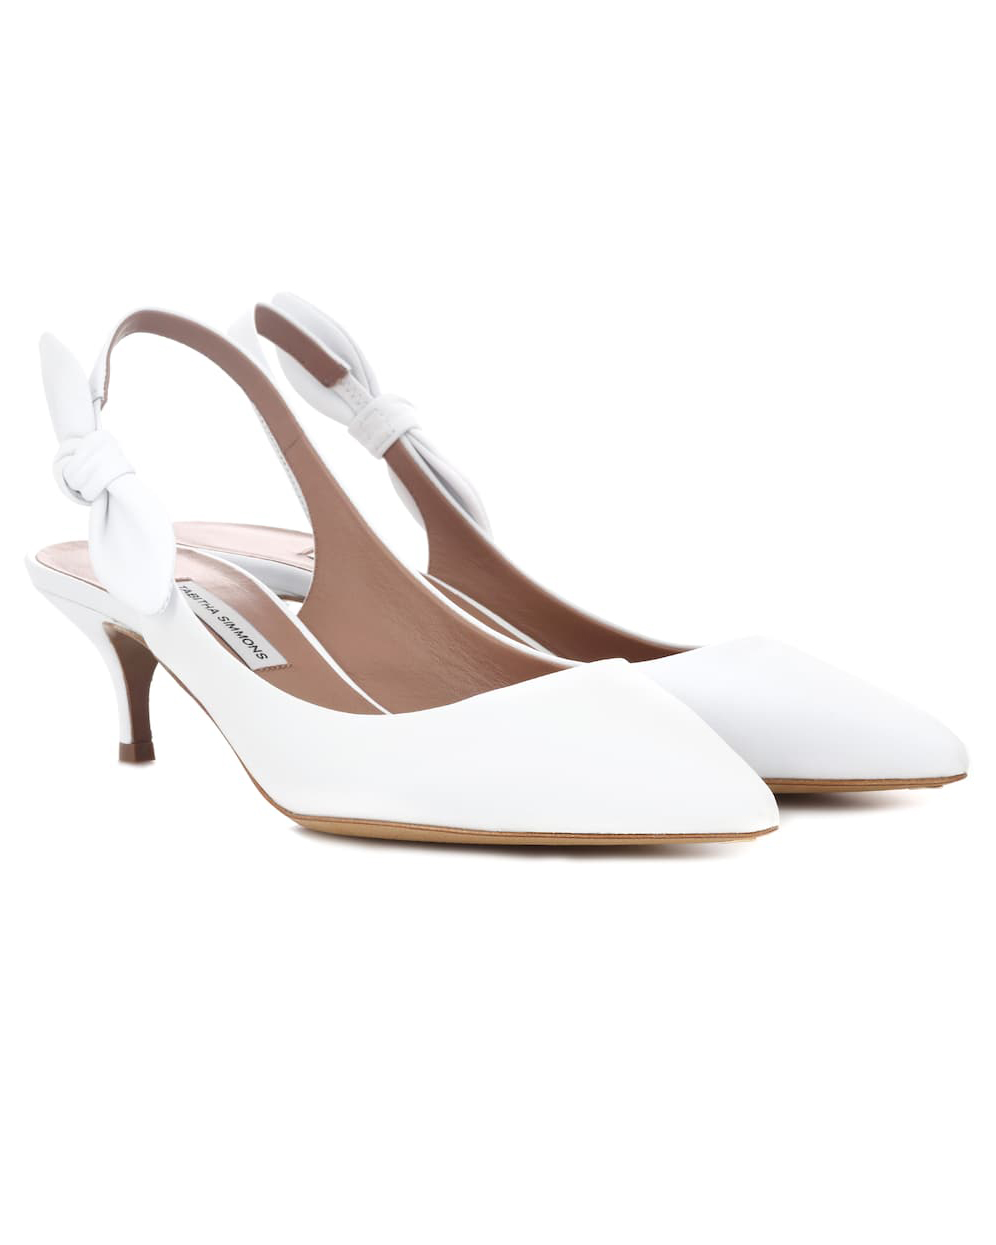 "Tabitha Simmons ""Rise"" Leather Sling-Back Pumps"